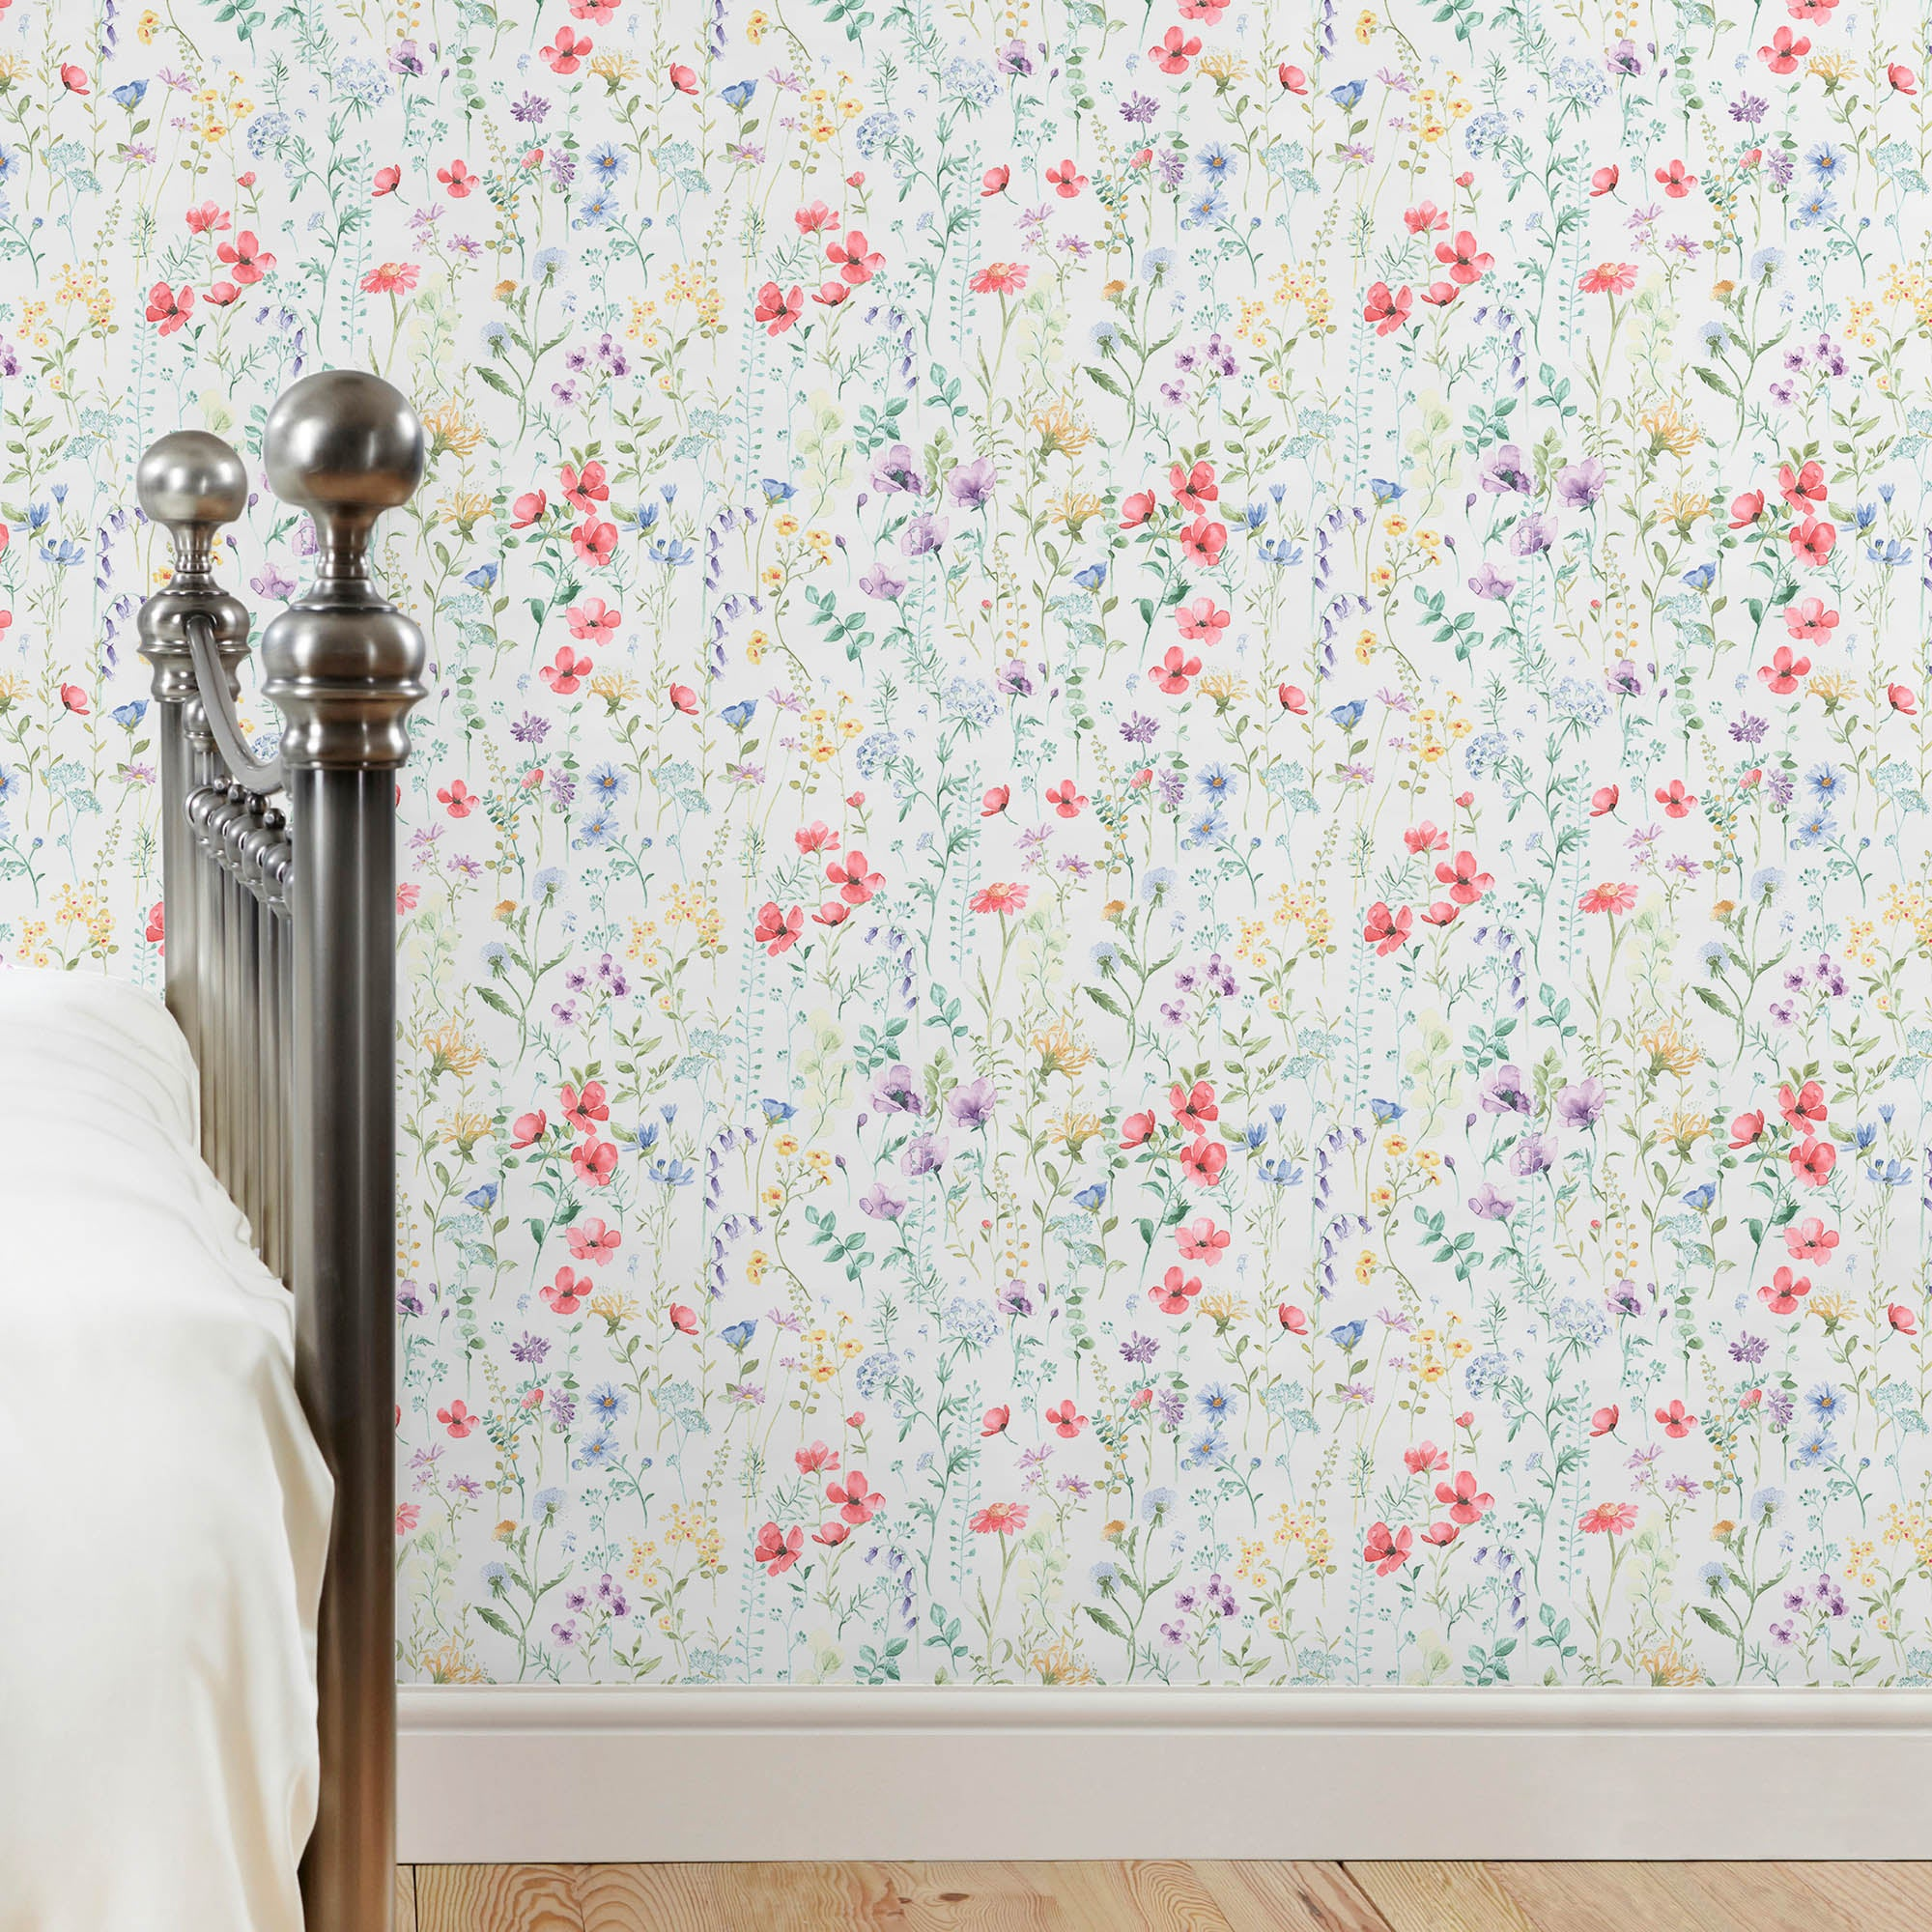 Image of Dorma Wildflowers Wallpaper Multi Coloured